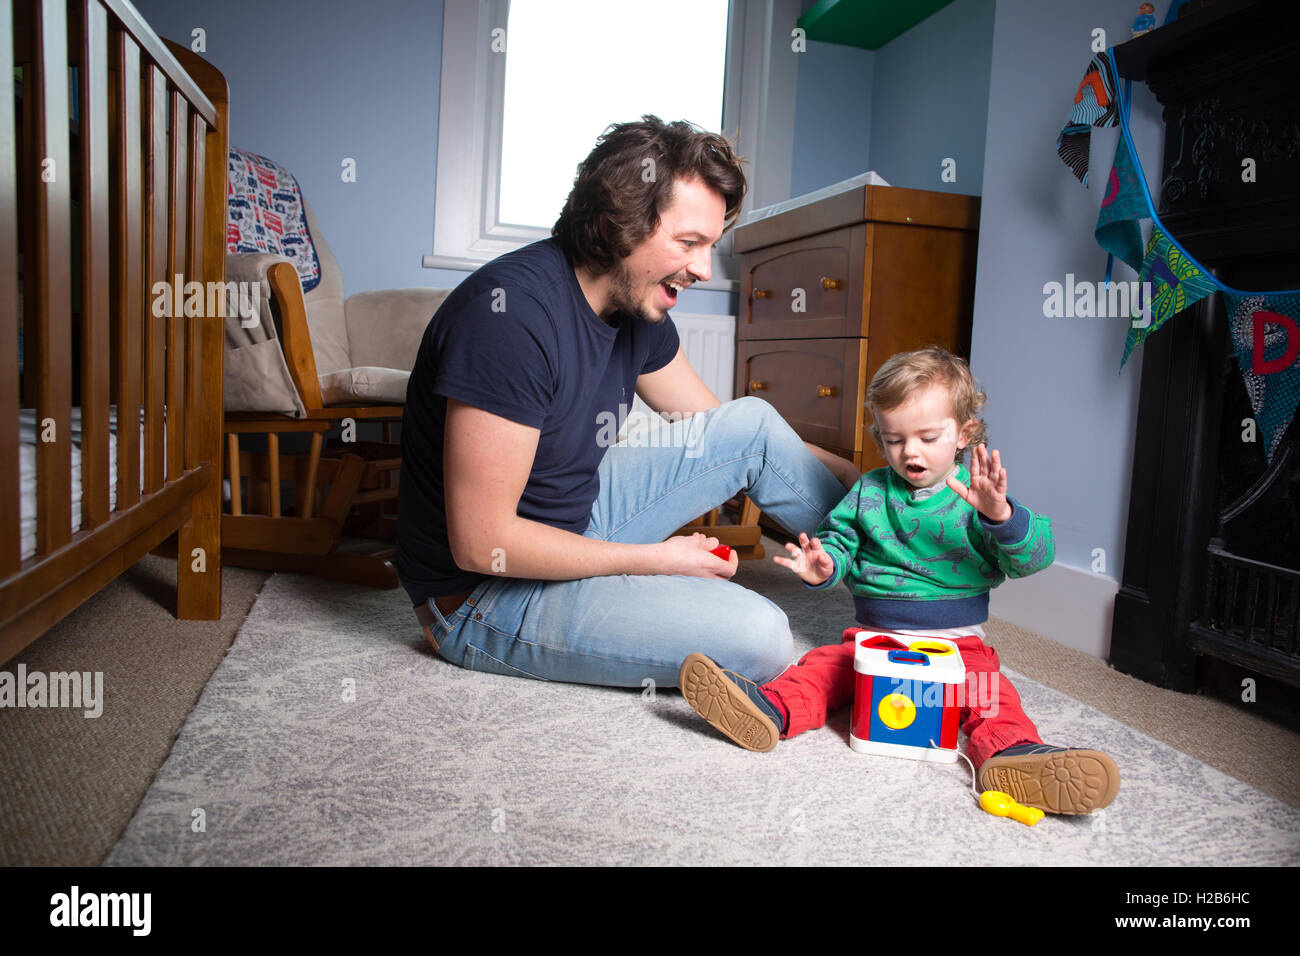 Stay-at-home dad, taking shared parental leave, one of just 3,000 British fathers said to be taking up shared parental - Stock Image